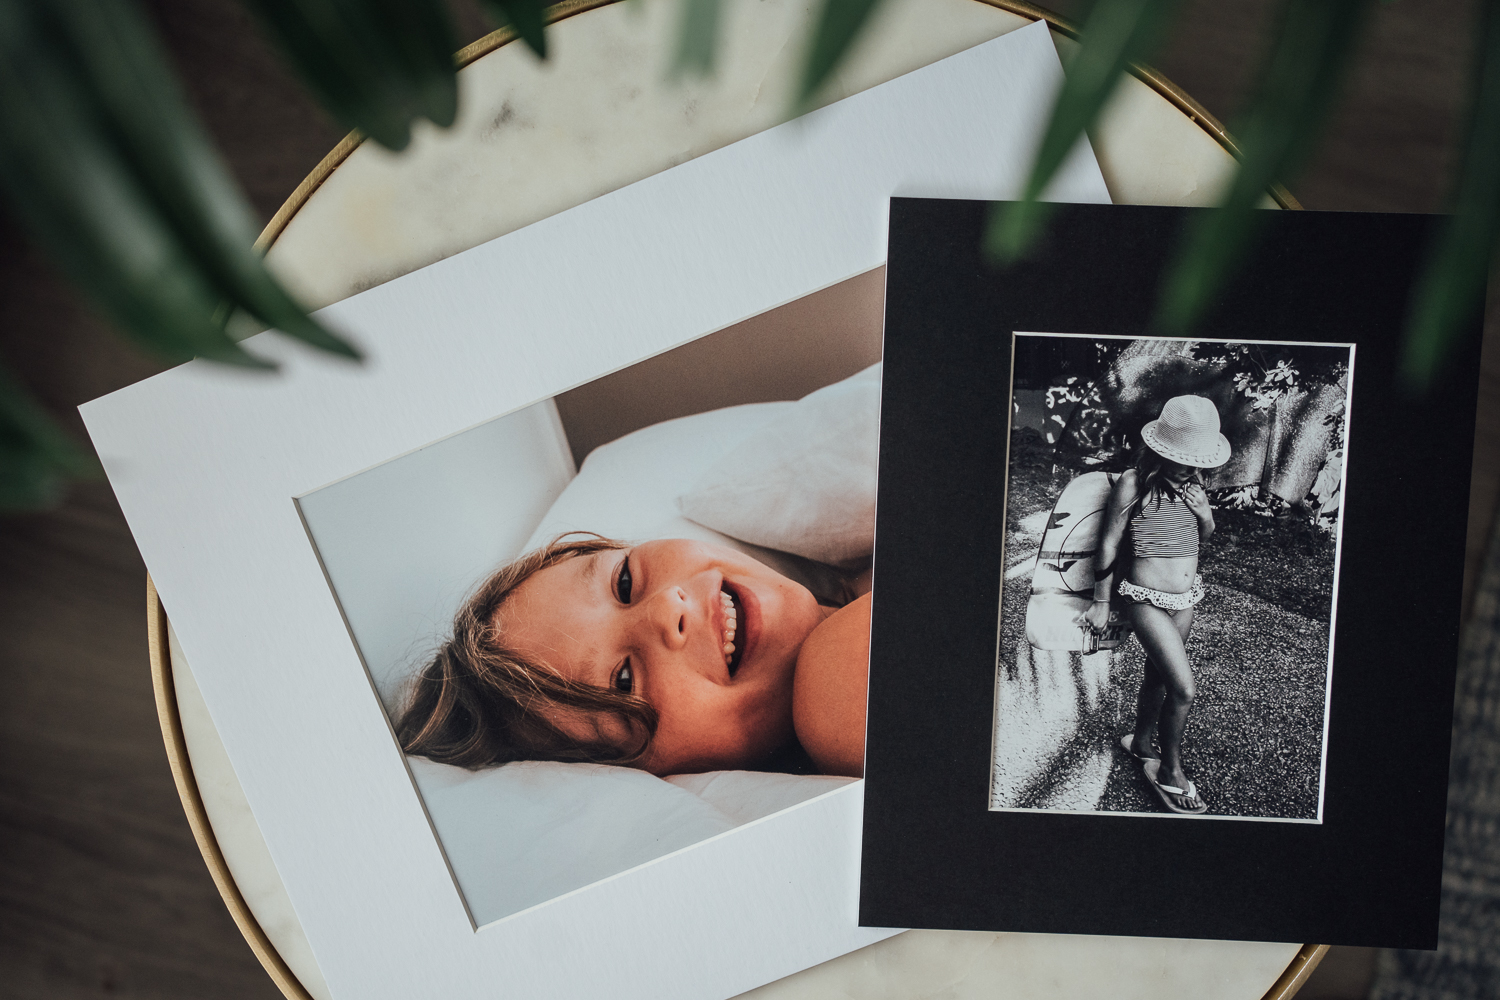 ORGANISING AND PRINTING YOUR PHOTO FRAME CHEVRON SAMPLES DISPLAY ON COFFEE TABLE WITH PLANT IN HOME